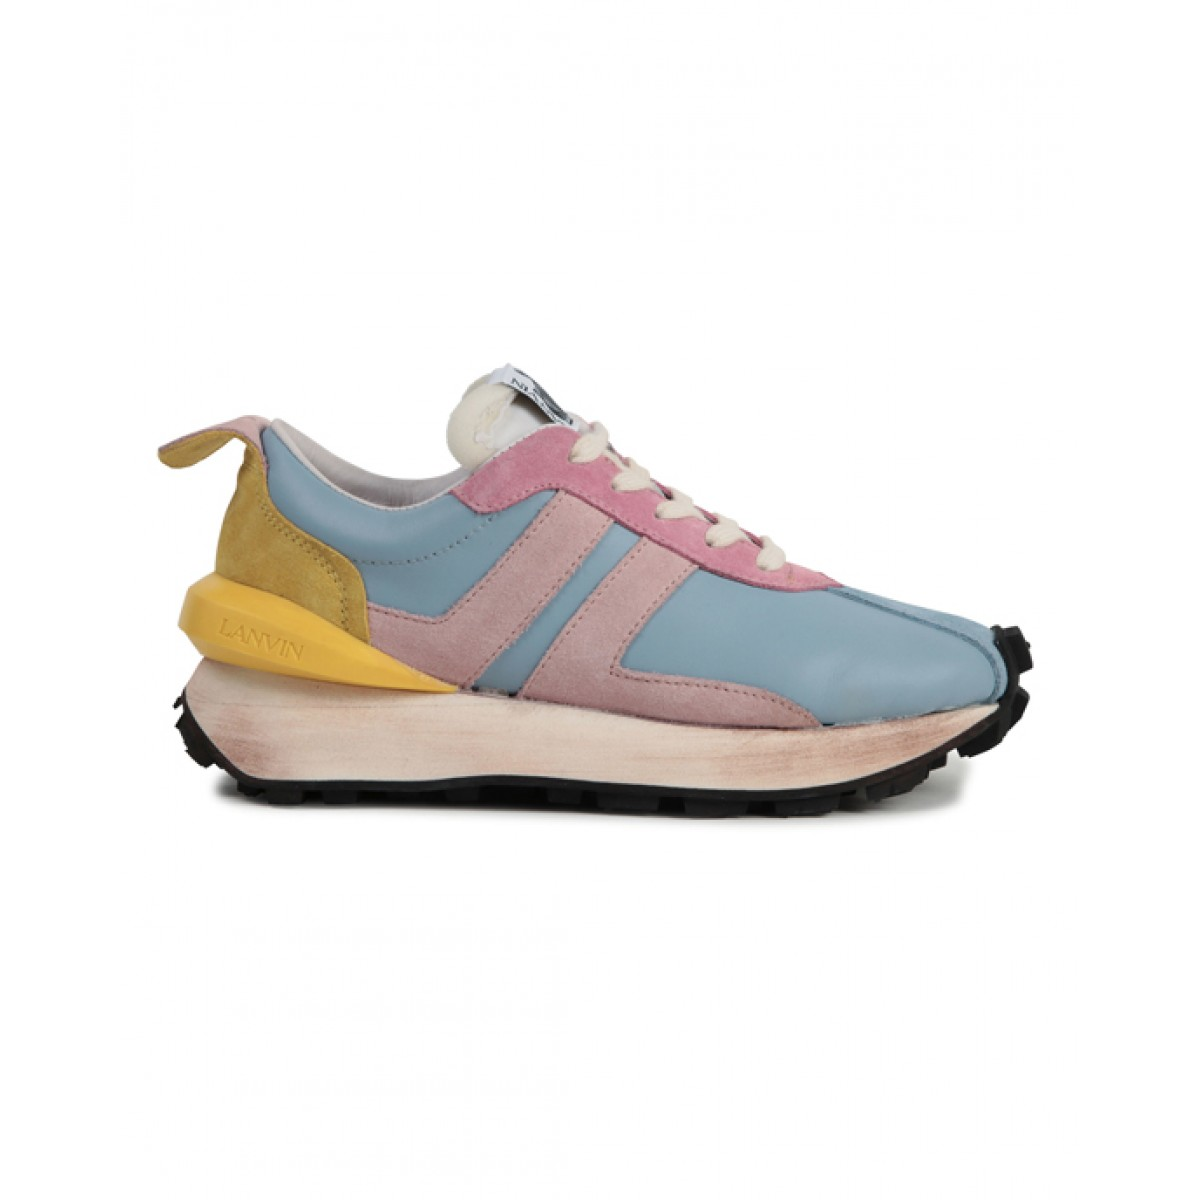 Pale blue and pink sneakers